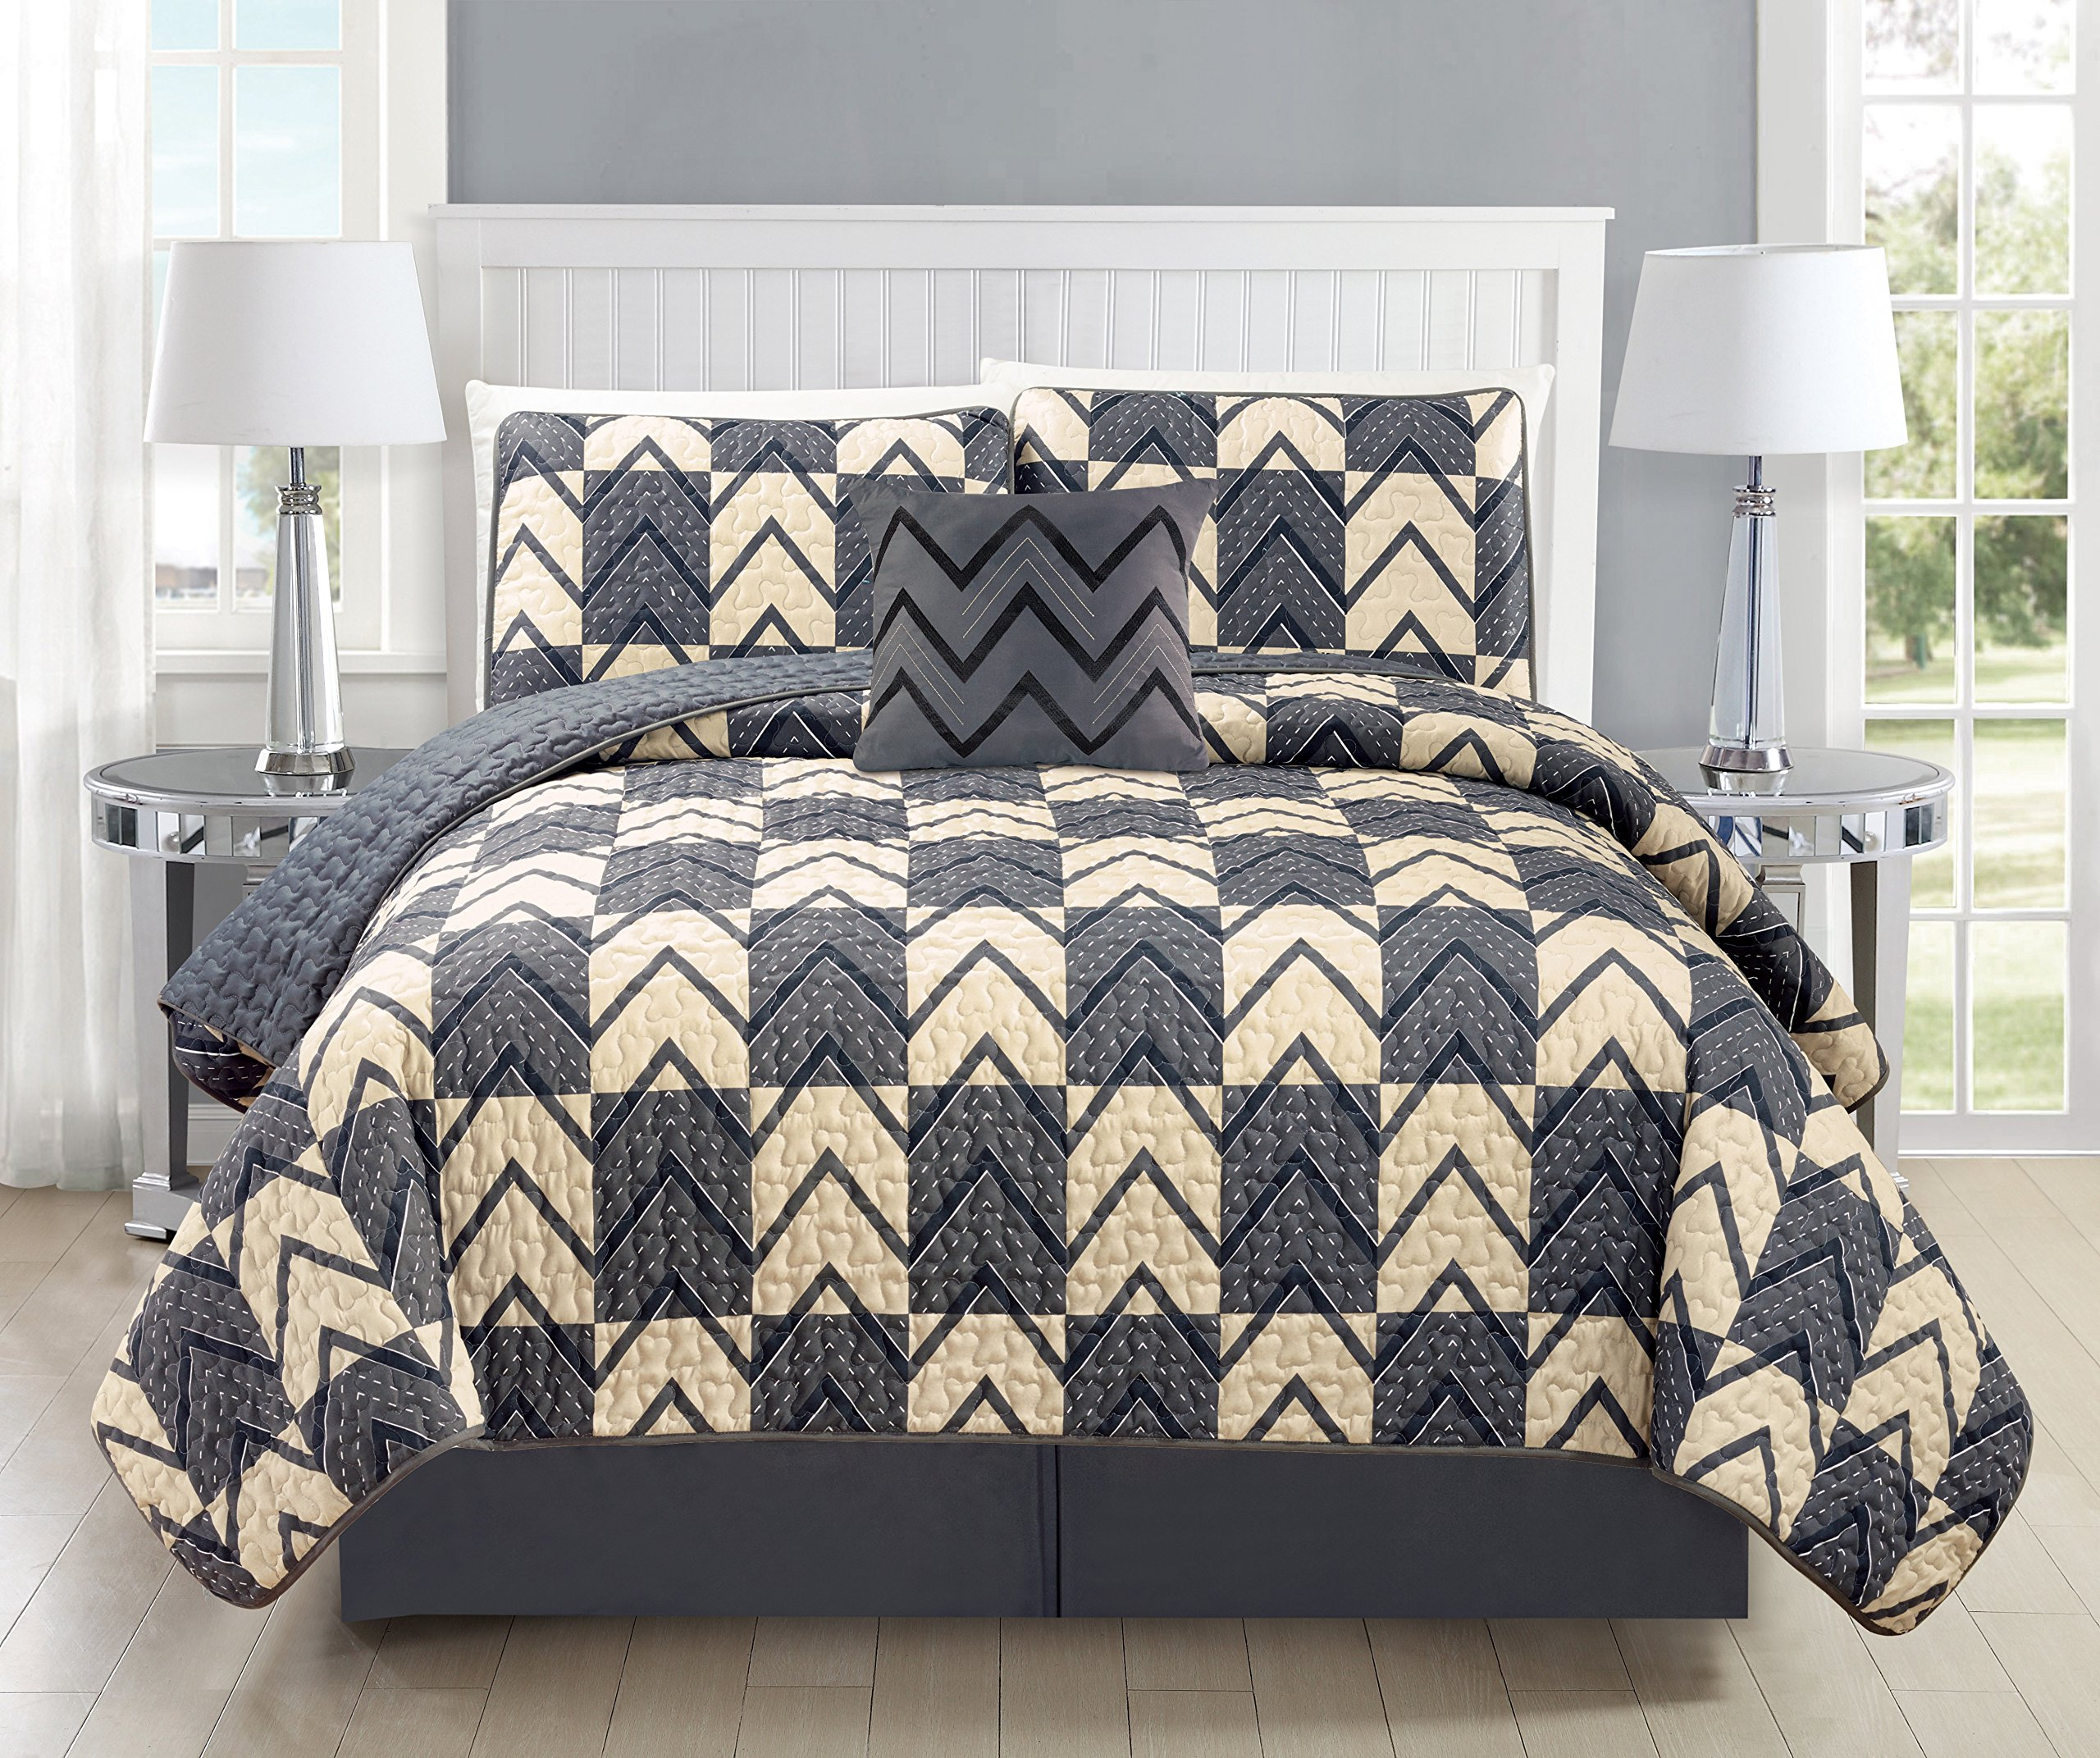 Mk Collection Bedspread coverlet quilted Modern Taupe Dark Grey/Charcoal Over Size New #184 (California King 5 Piece Set) by MK Home